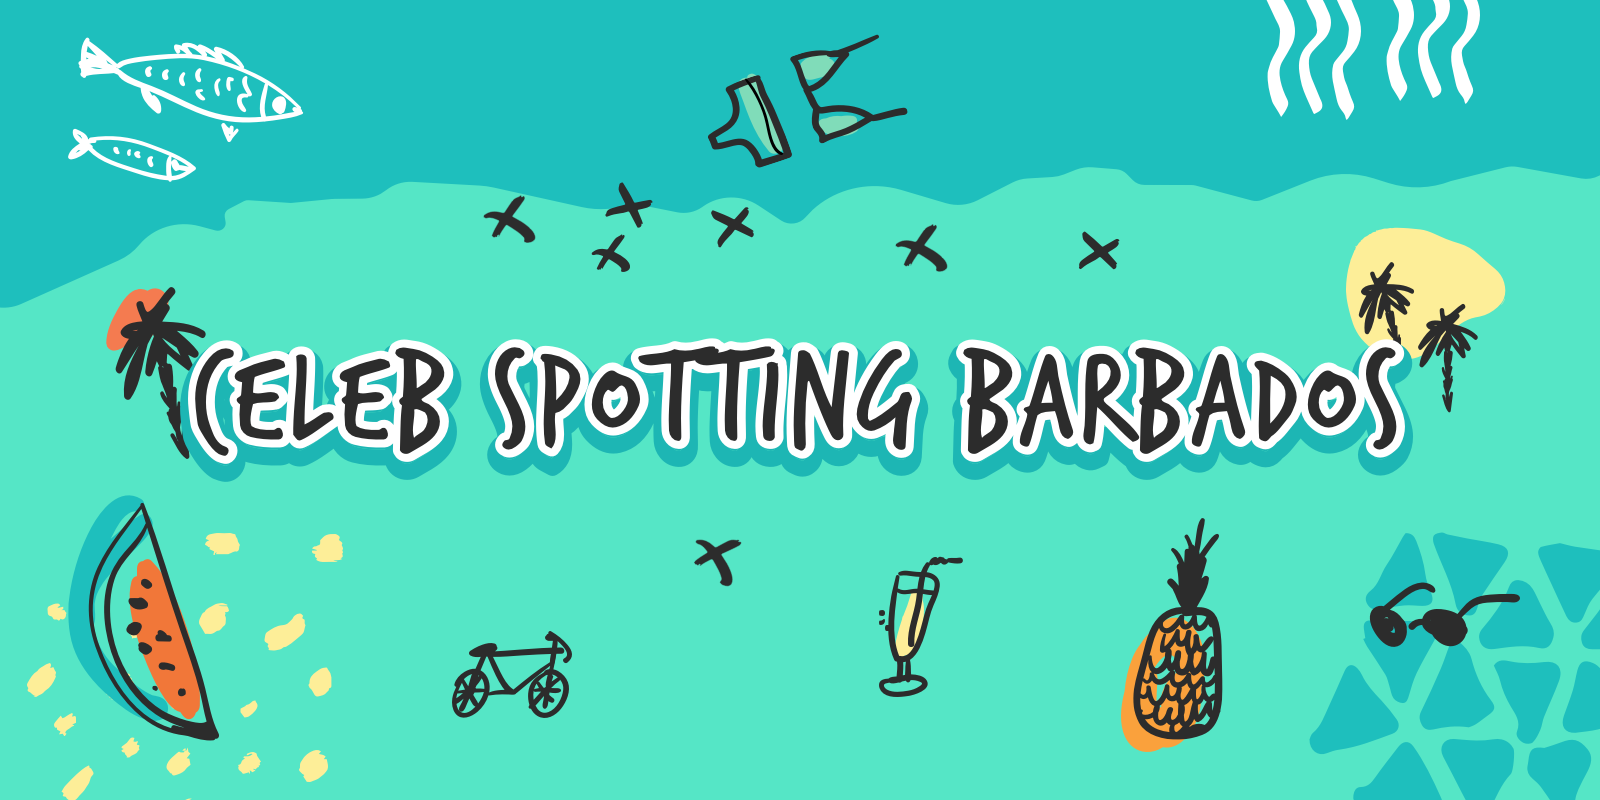 Travel blog: Infographic: Paparazzi At The Ready, Here's Our Guide To Celebrity Spotting In Barbados